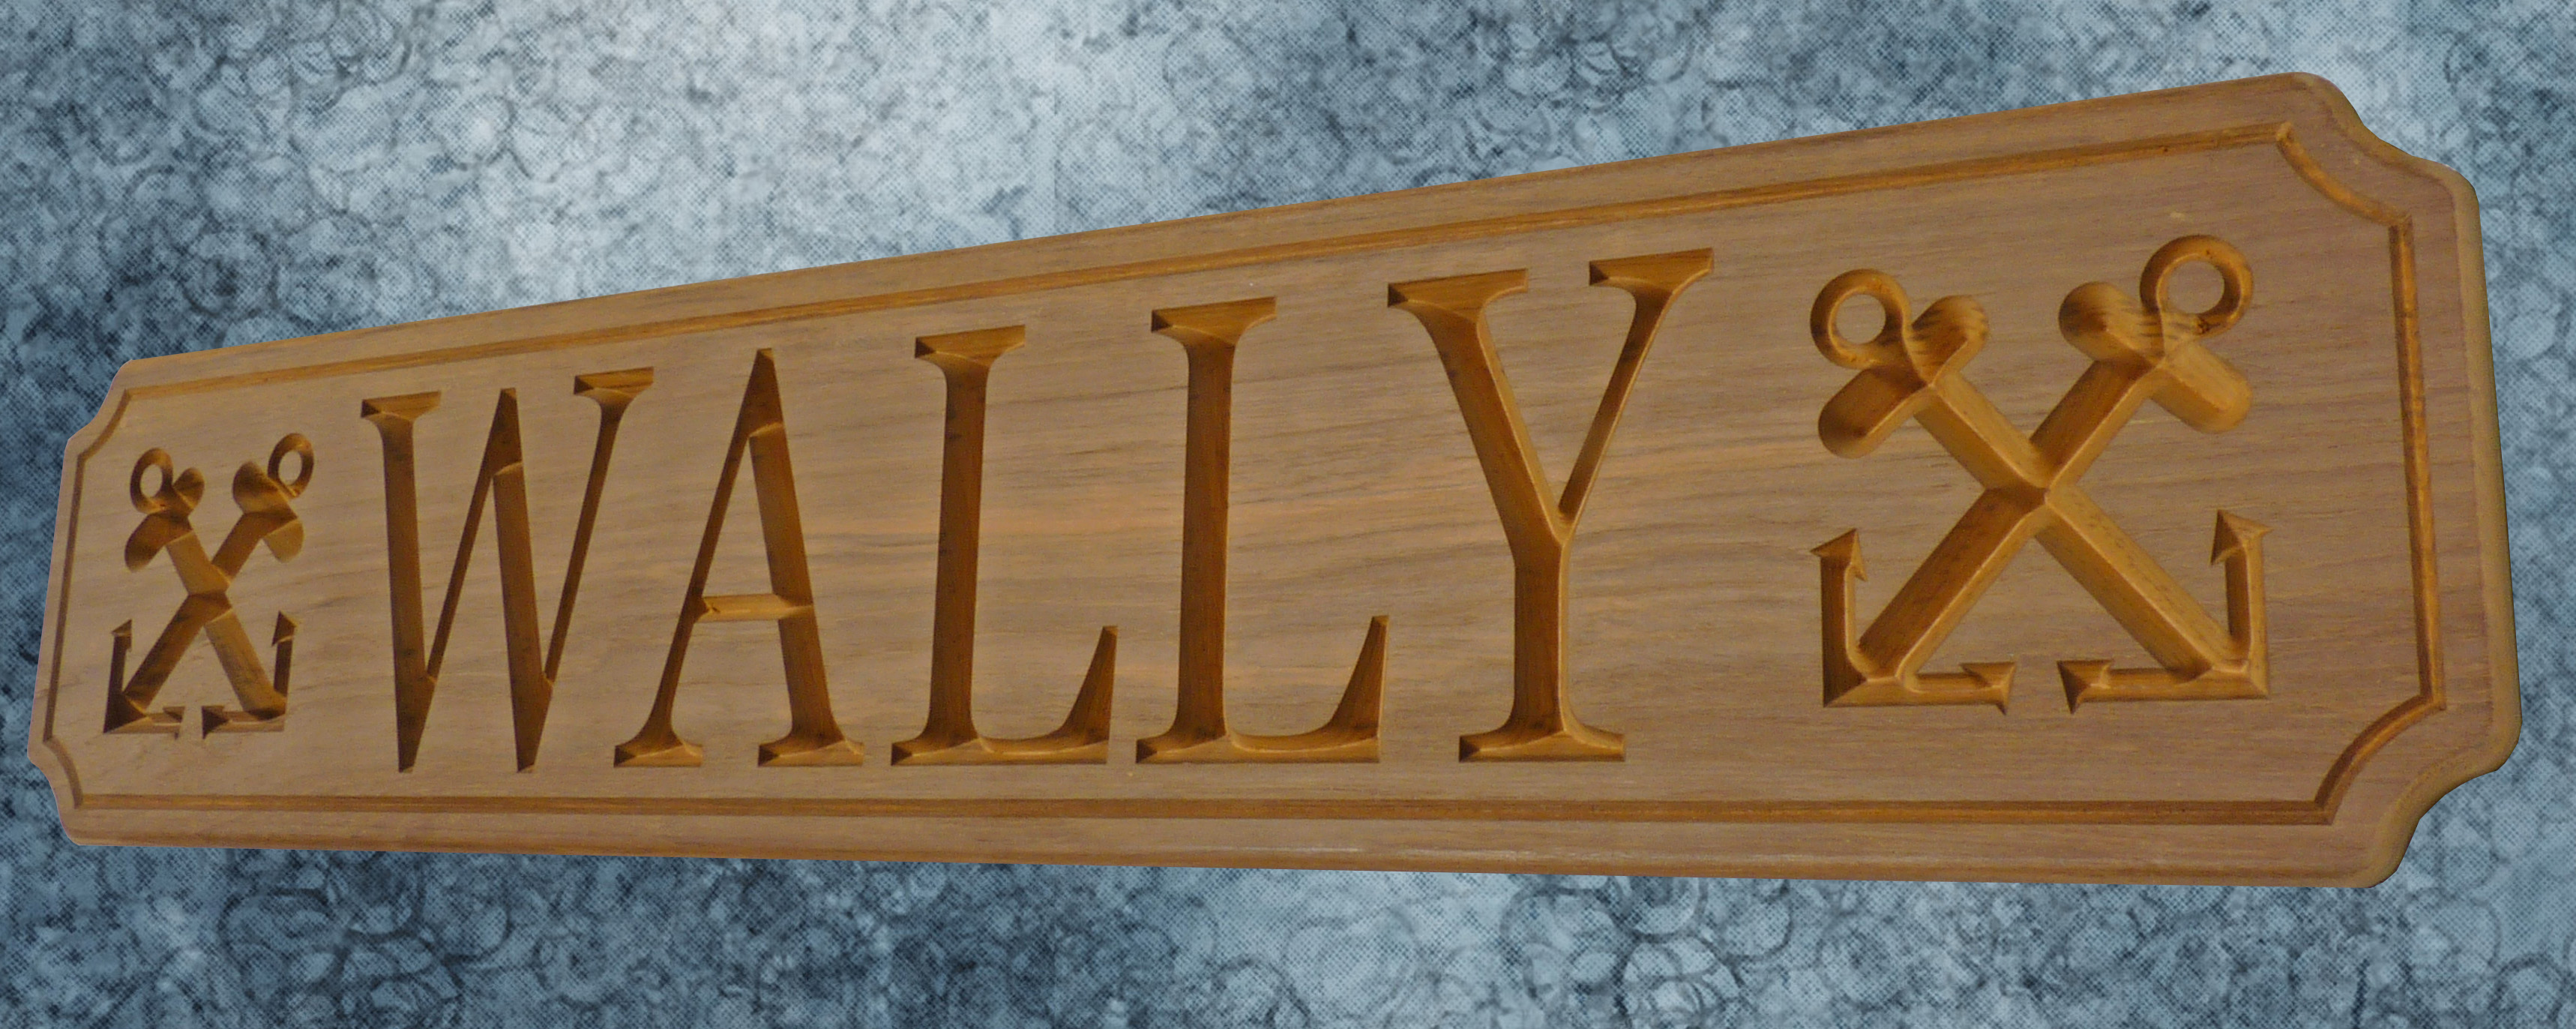 WALLY custom nameboard